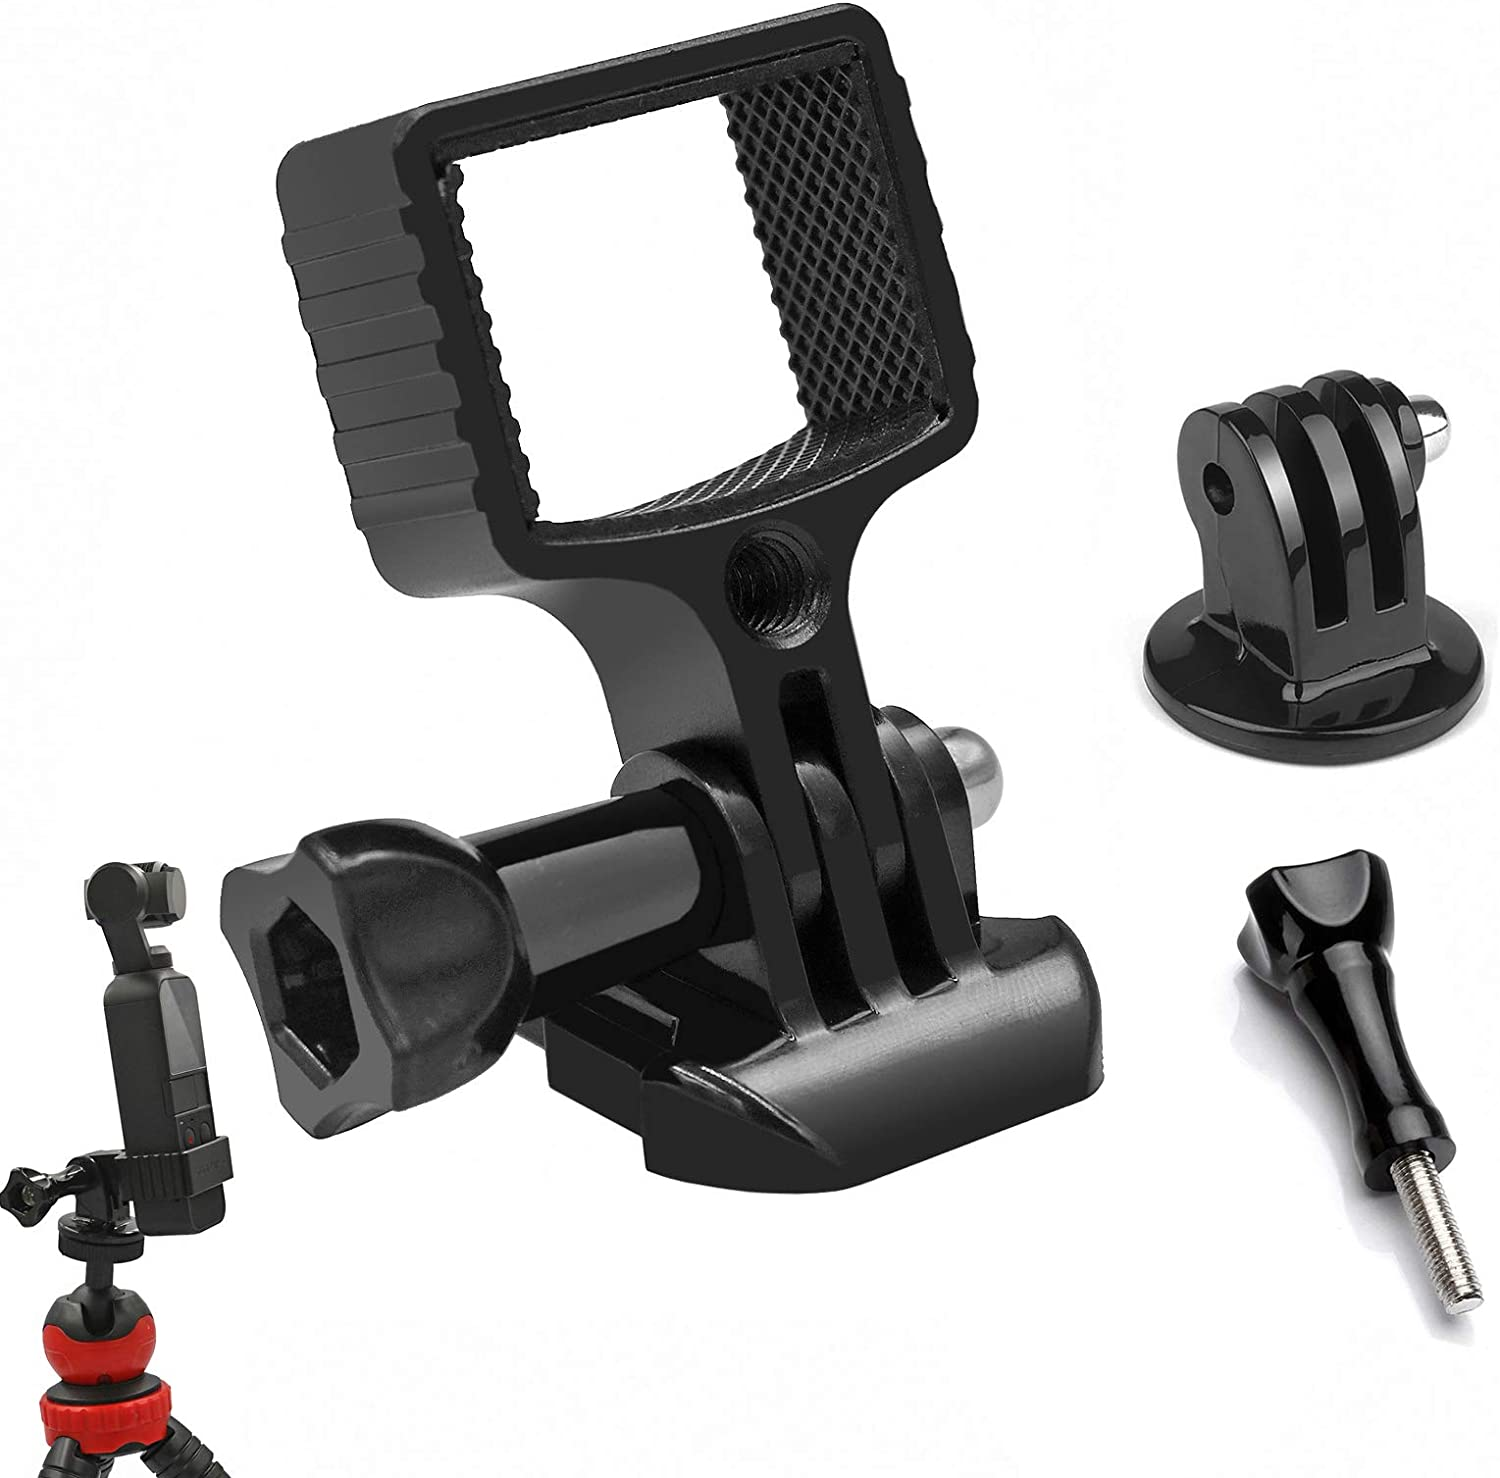 Gurmoir Aluminum Alloy Extension Holder Adapter Kit Compatible with DJI Osmo Pocket Mount with Tripod Gimbal Monopod or GoPro Accessories (with 1/4 Screw Hole)